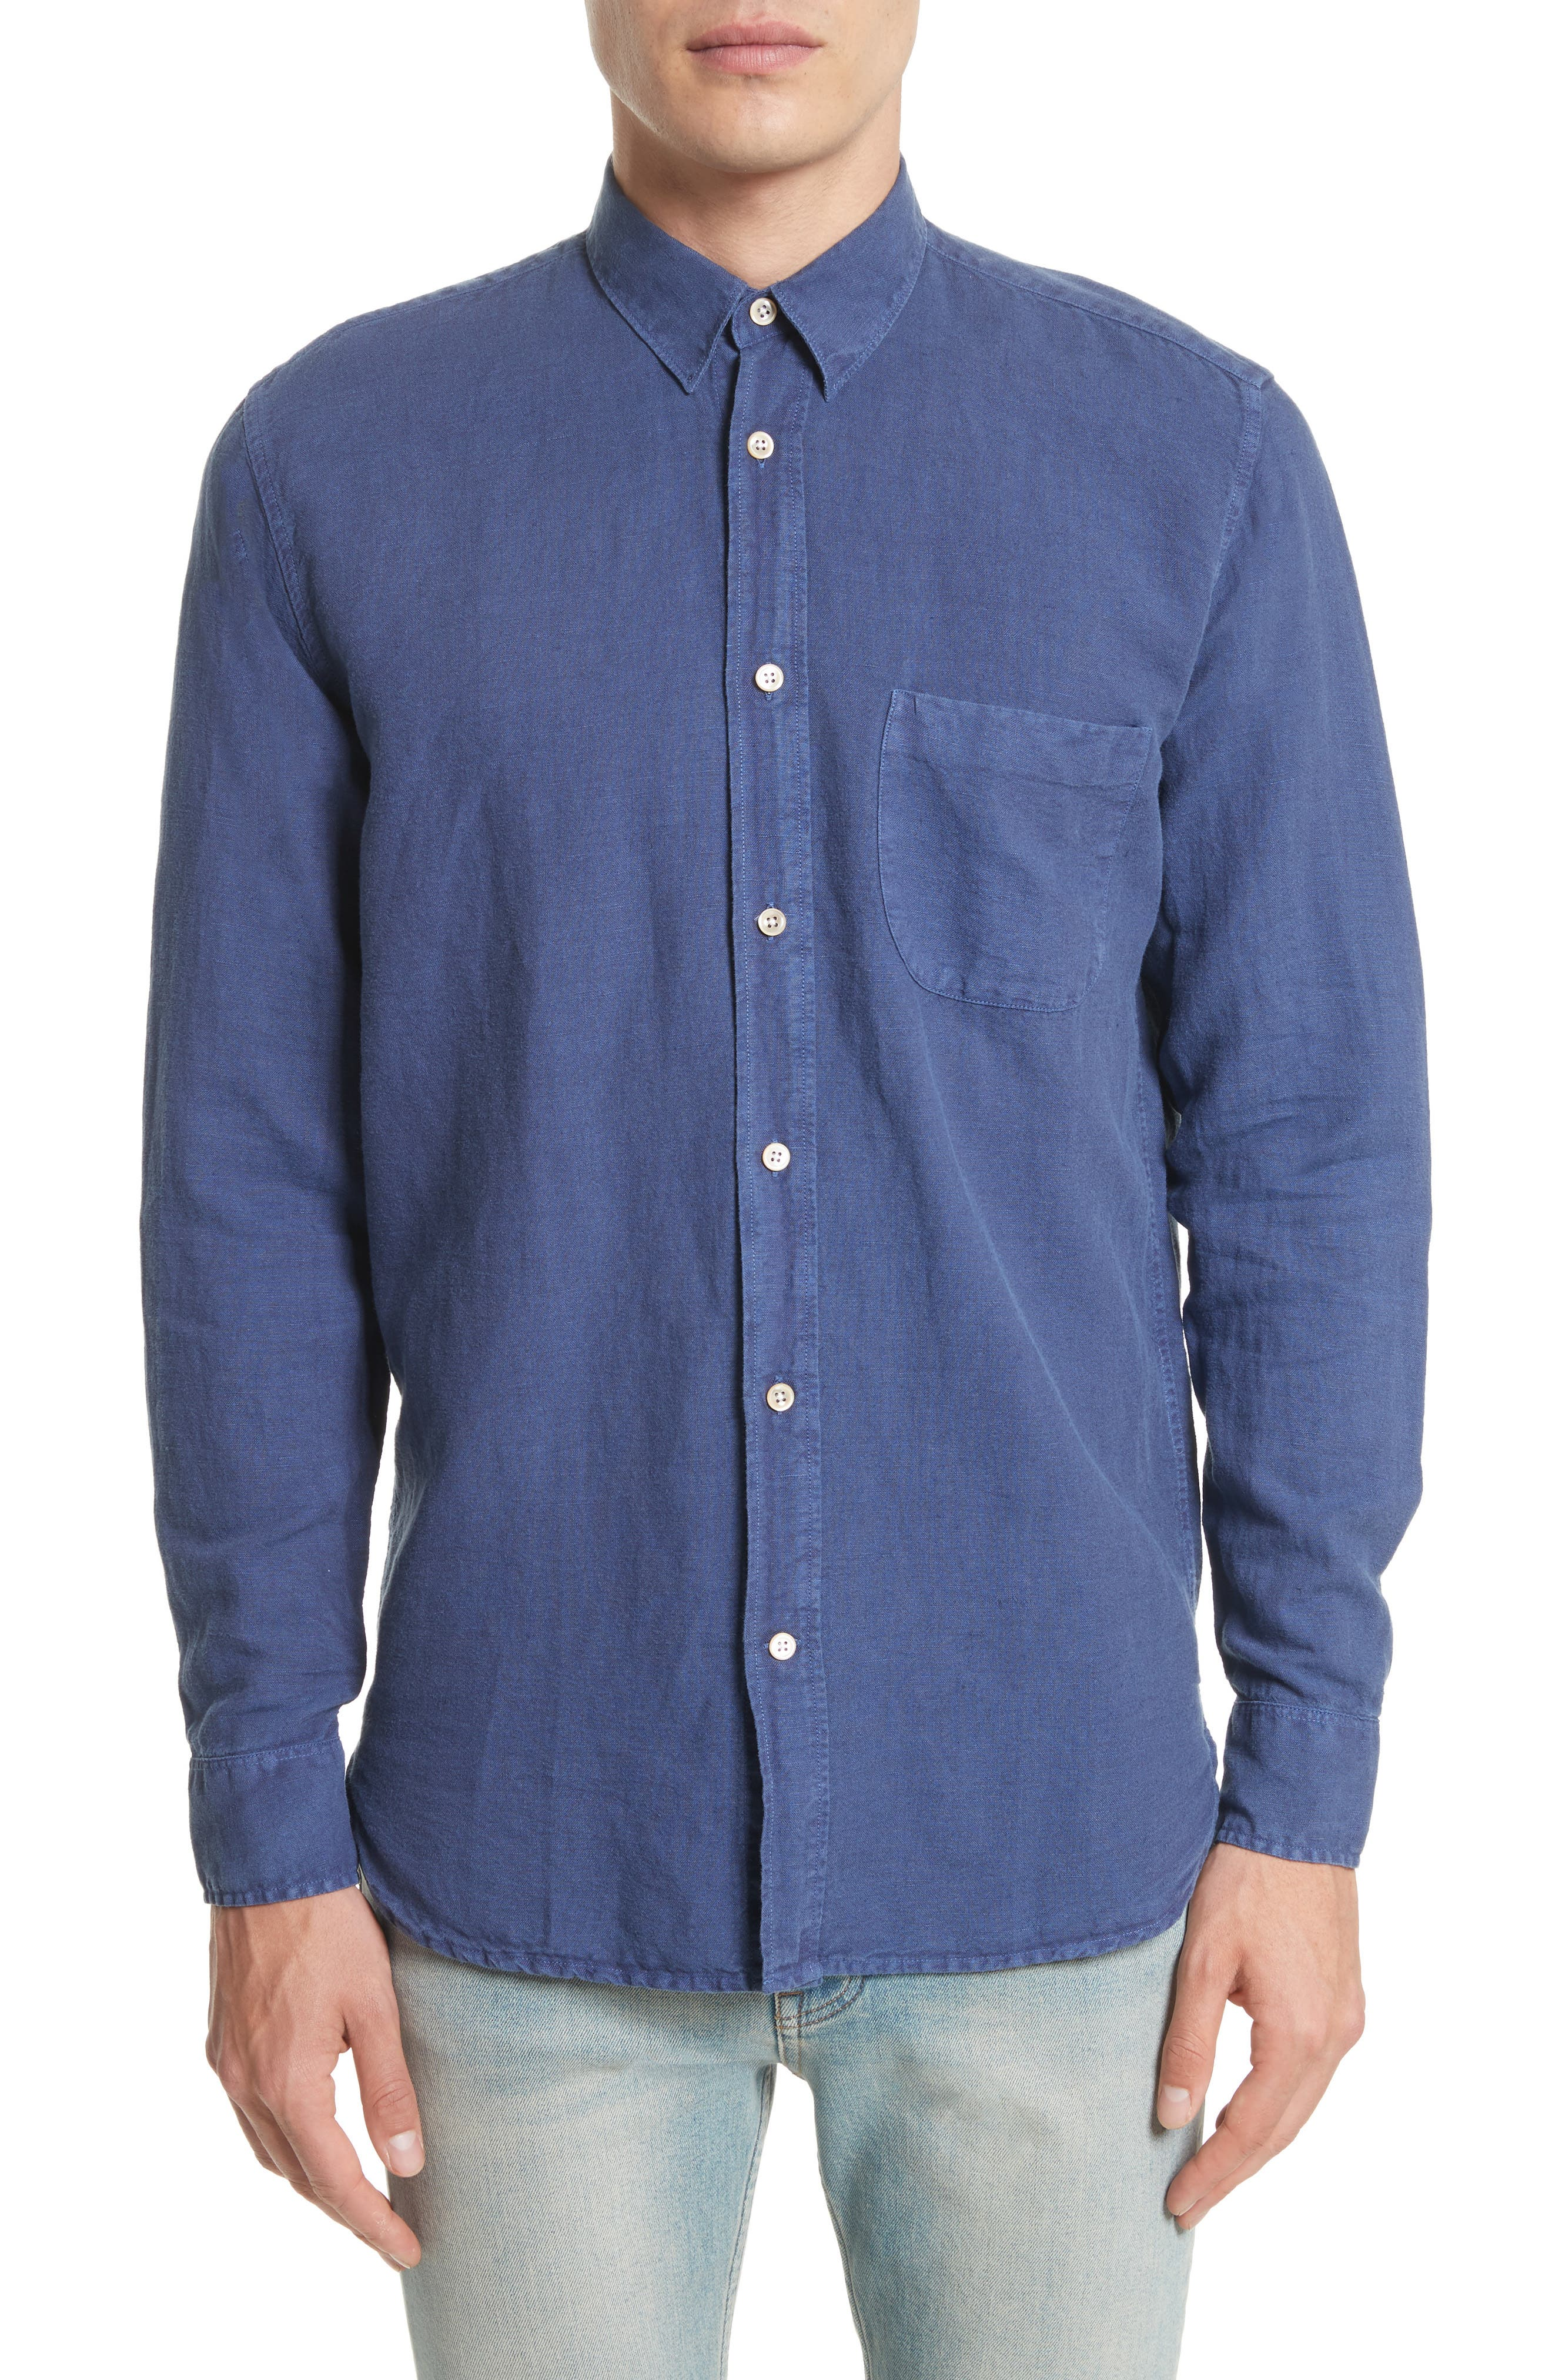 Alternate Image 1 Selected - OUR LEGACY Generation Linen & Cotton Sport Shirt